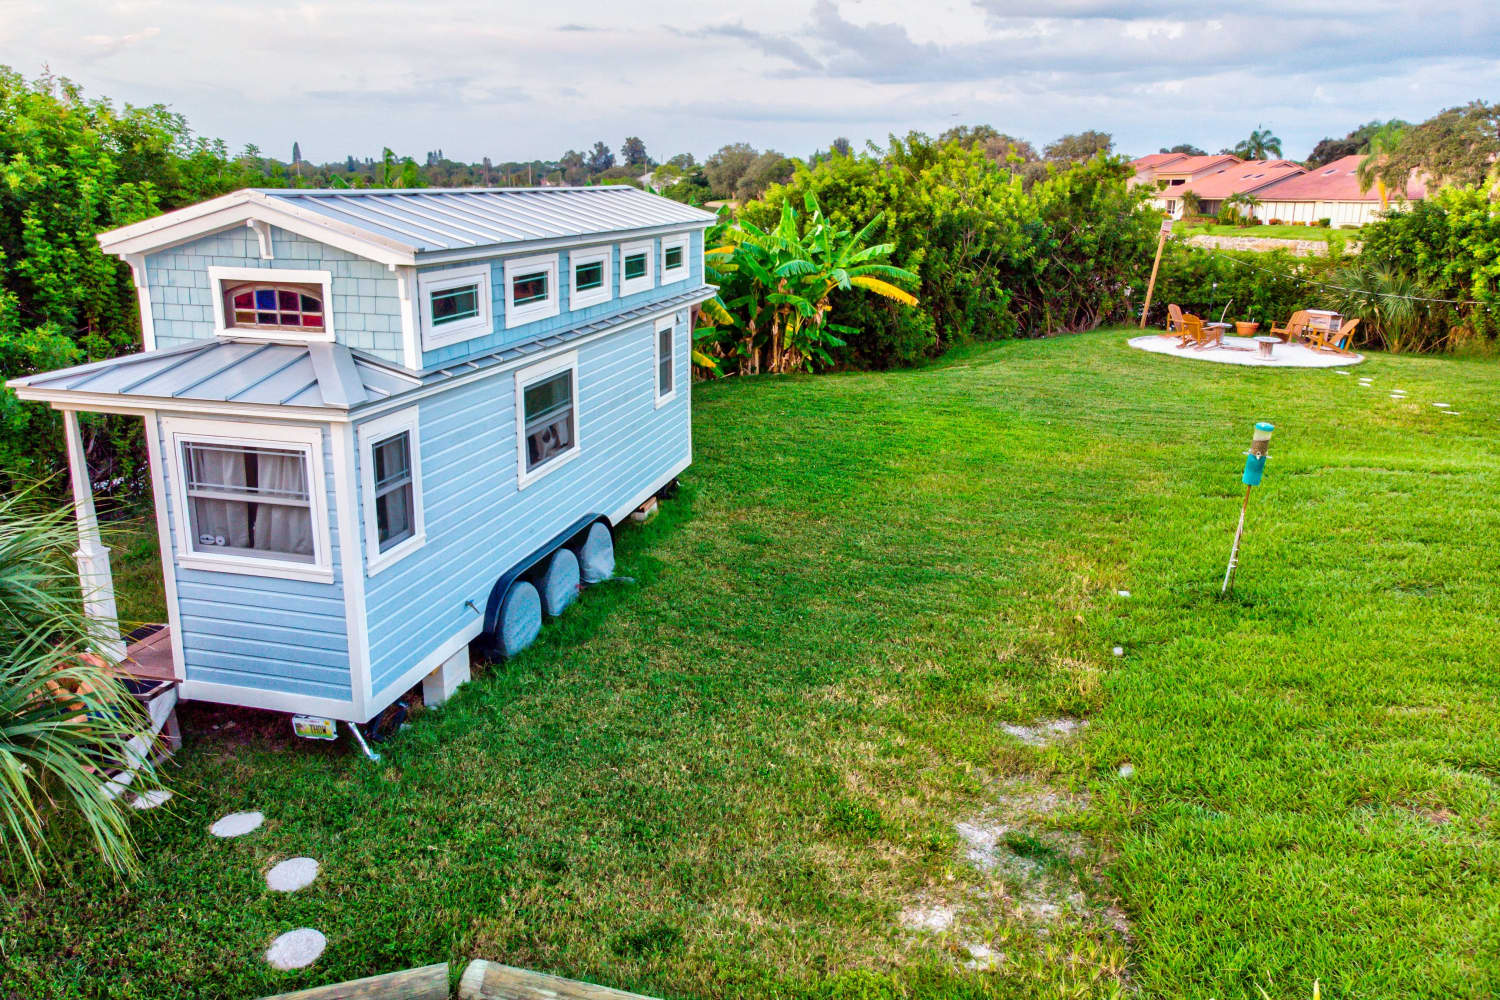 This Adorable Pair of Tiny Houses Makes Small Living Look Easy and Stylish